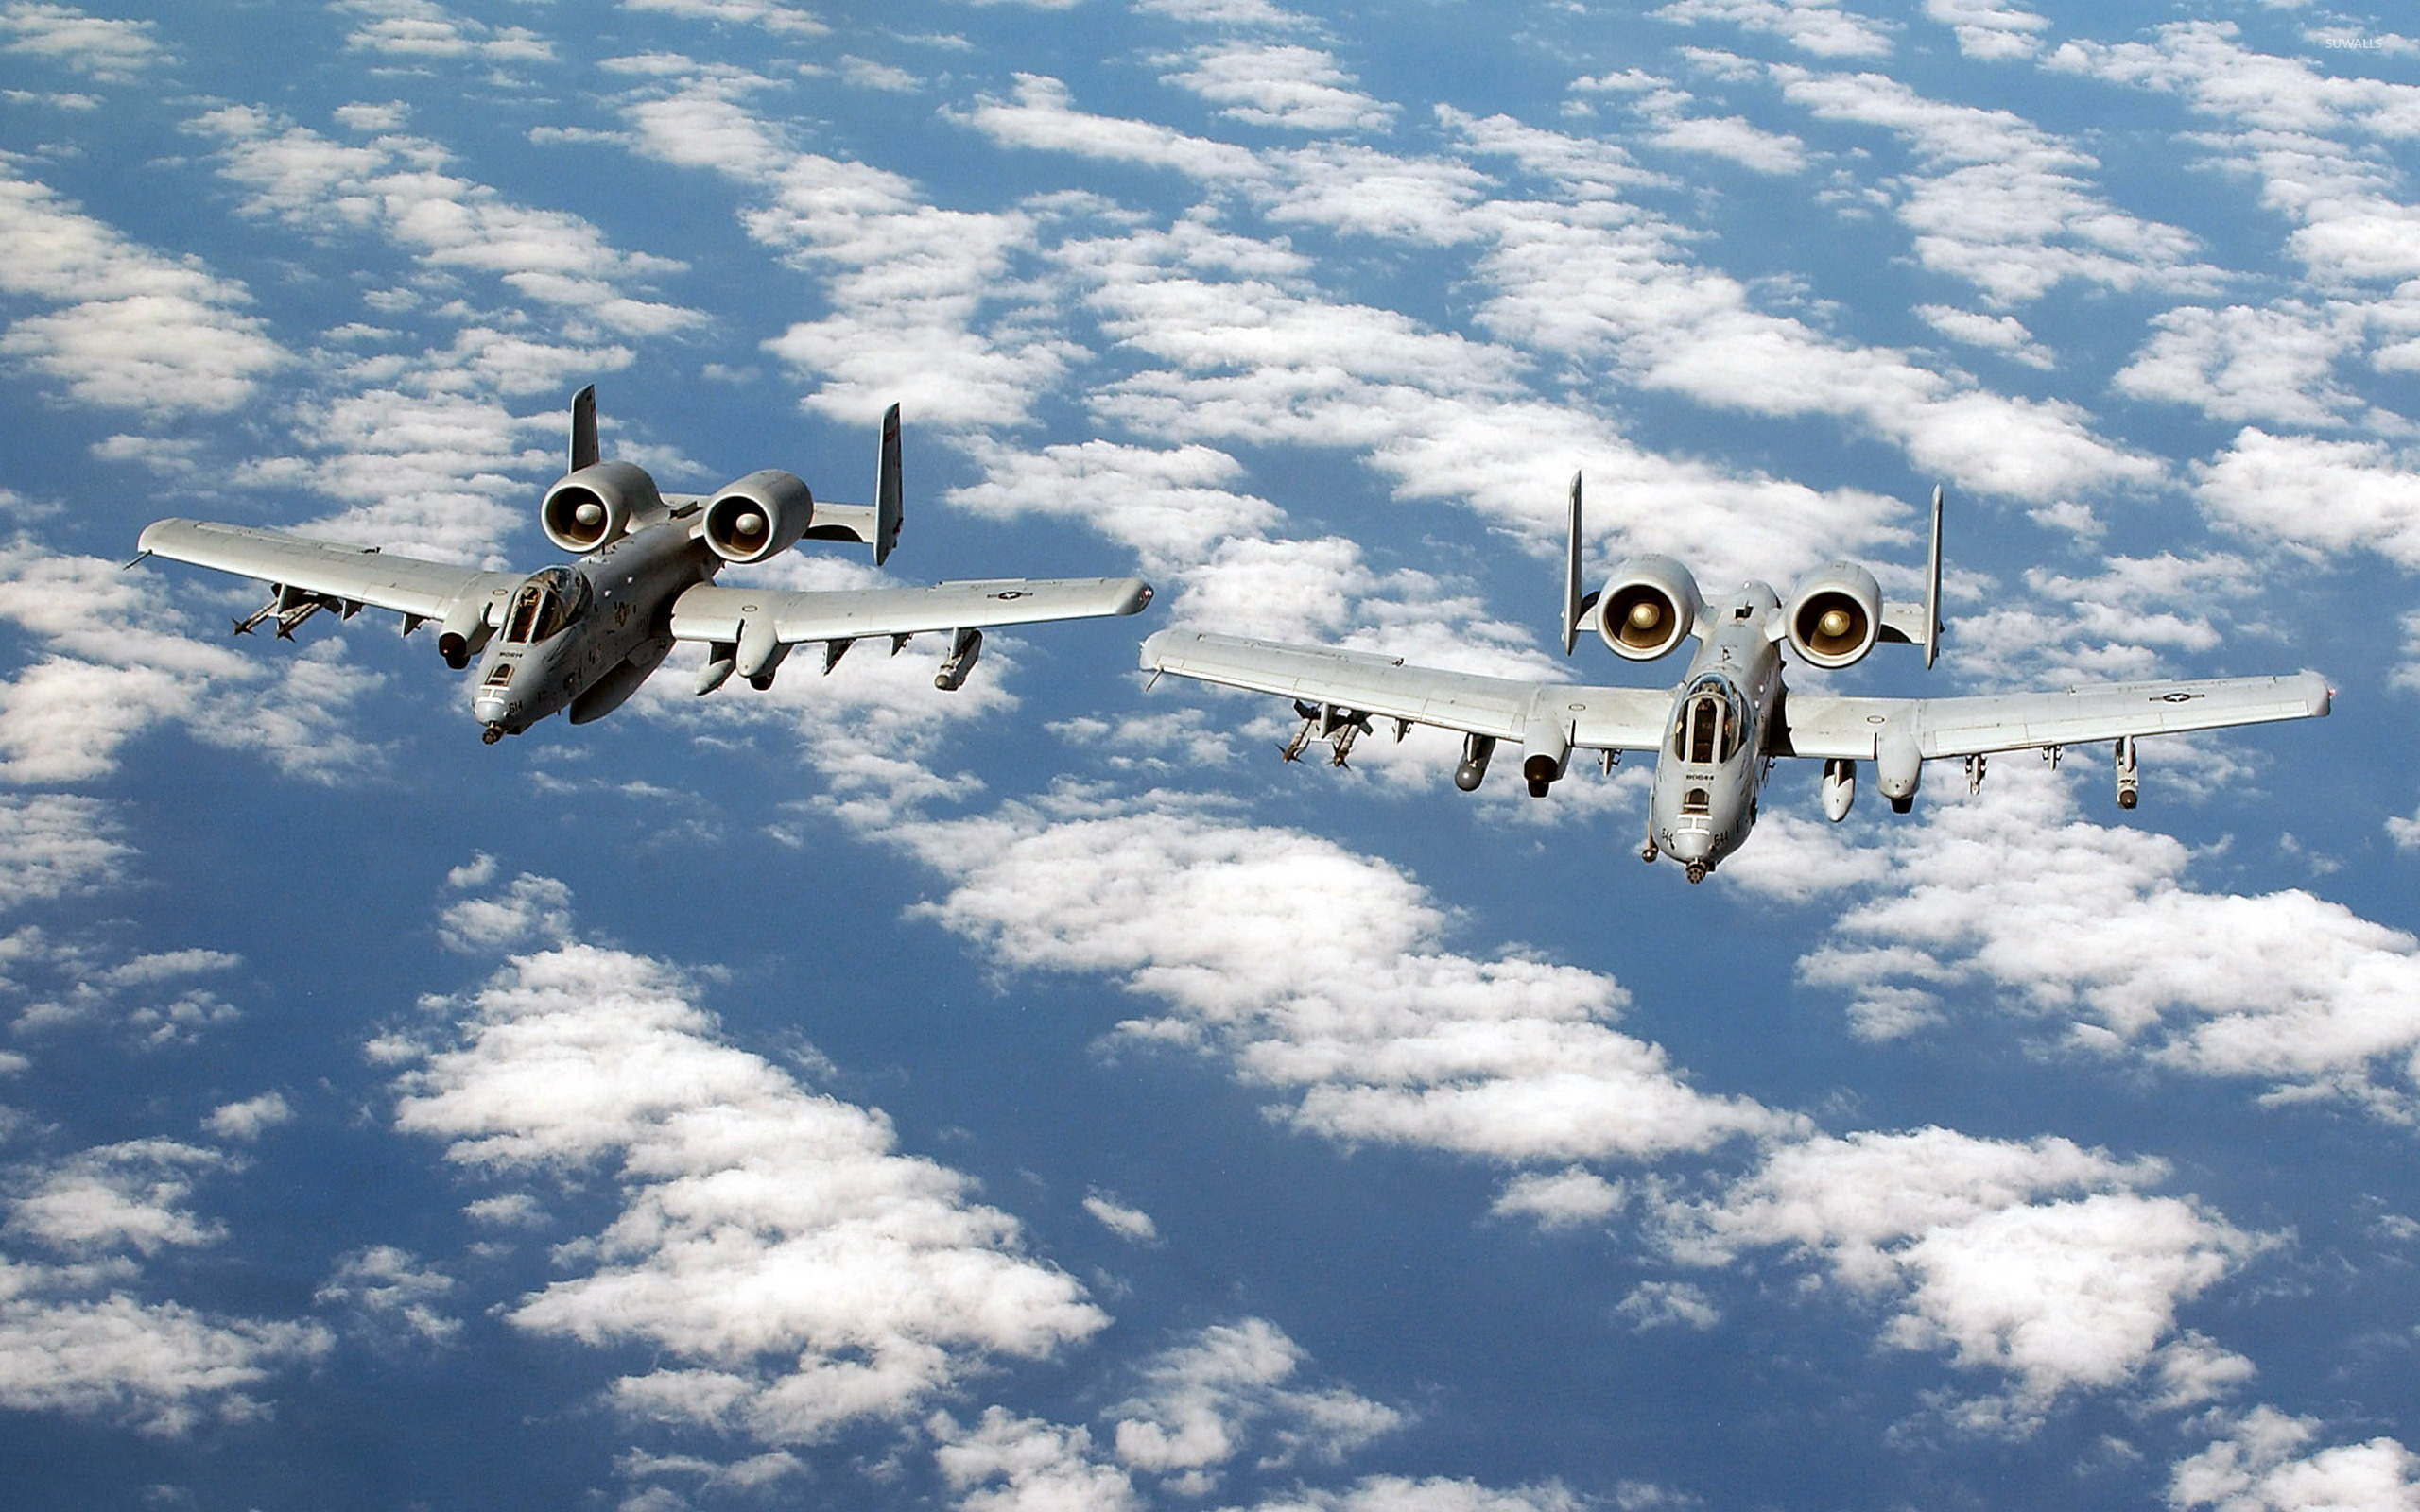 A 10 Thunderbolt II Aircrafts wallpapers (83 Wallpapers ...